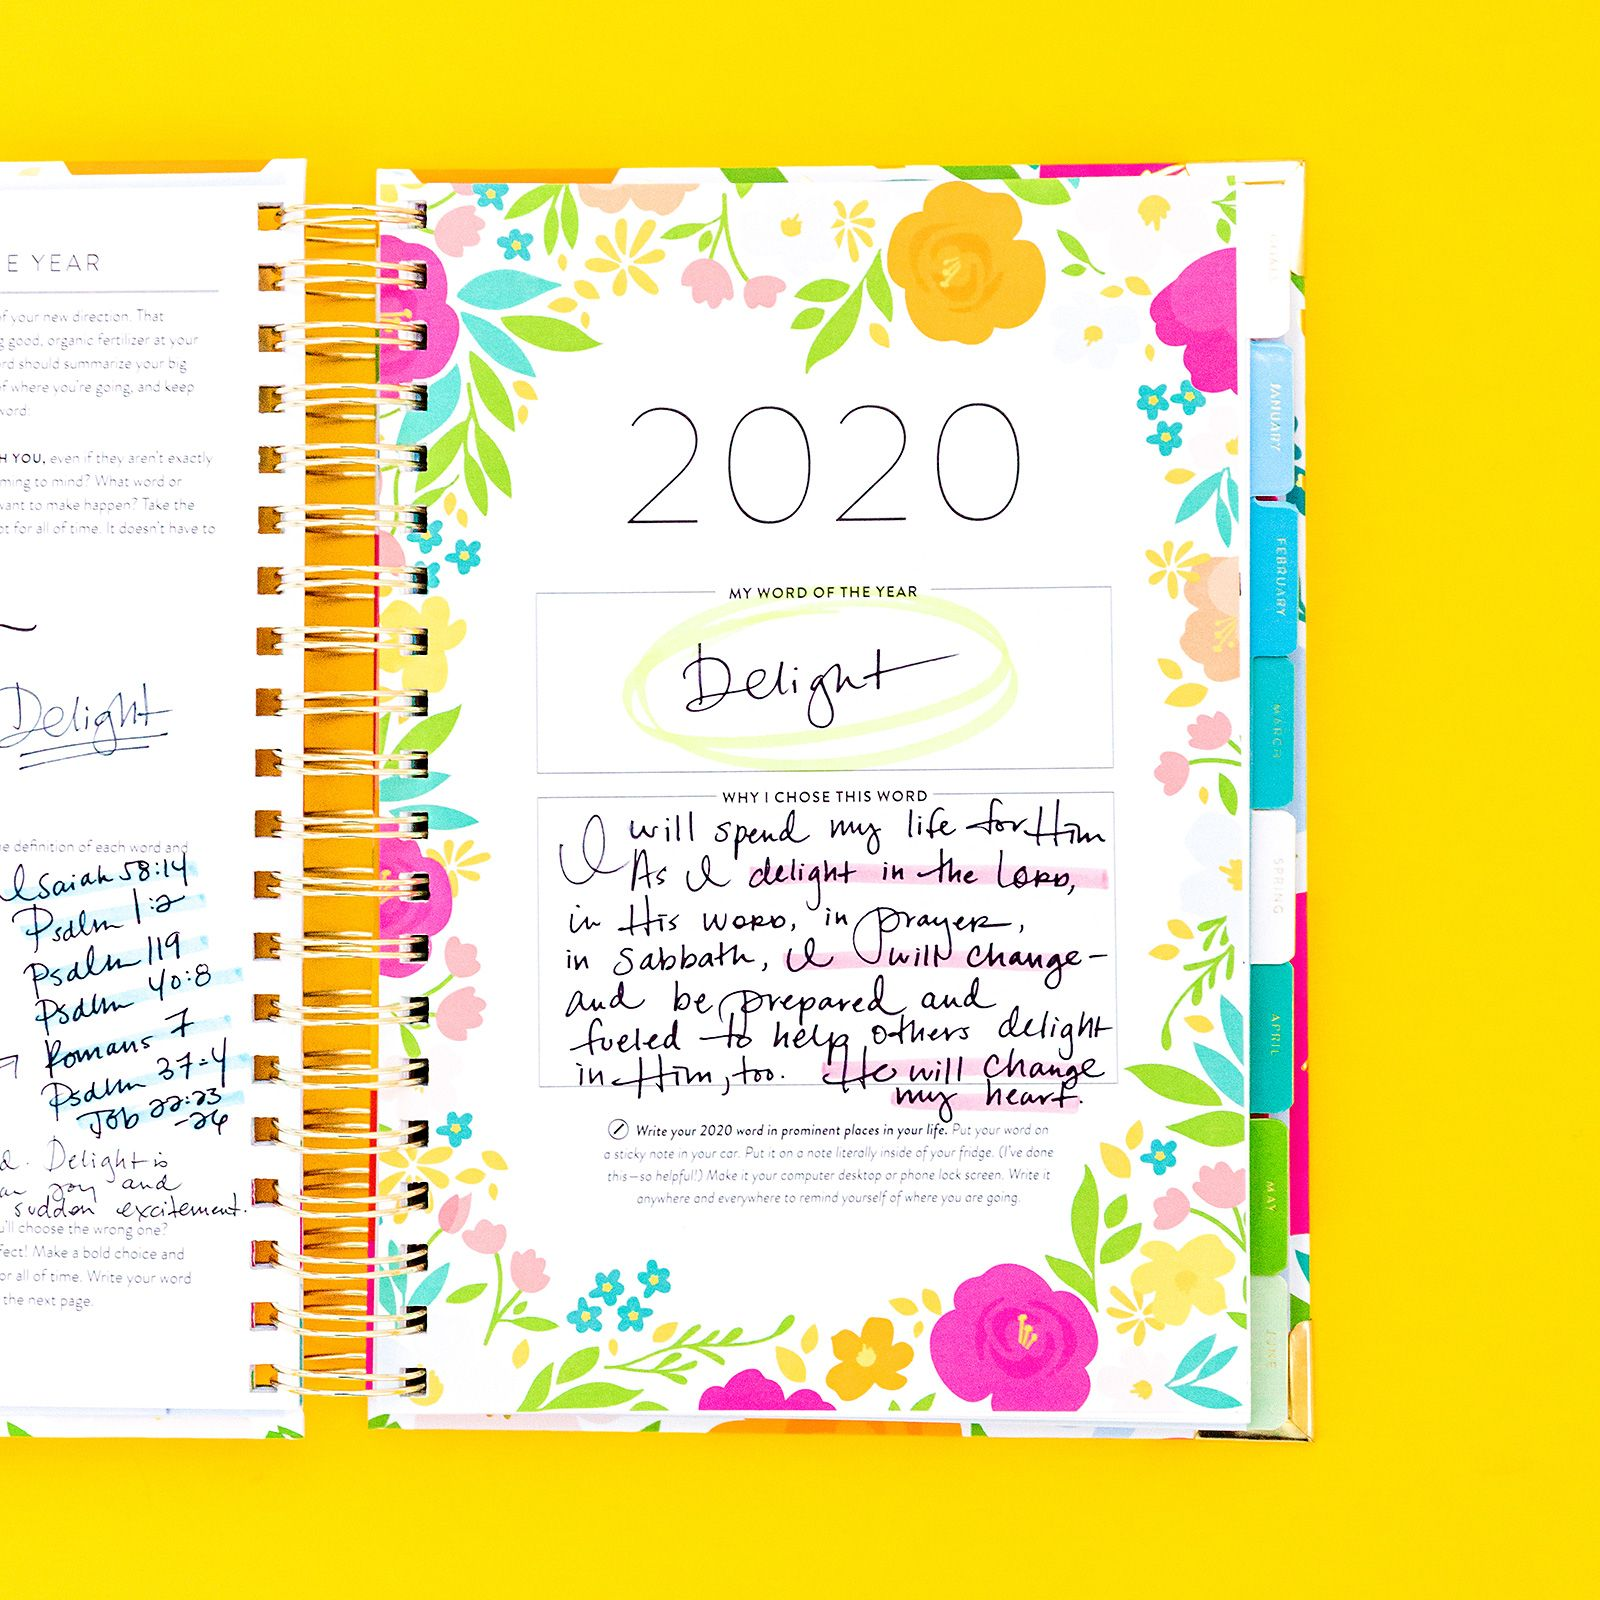 2020 GOAL SETTING, Part 2 How to Choose a Word of the